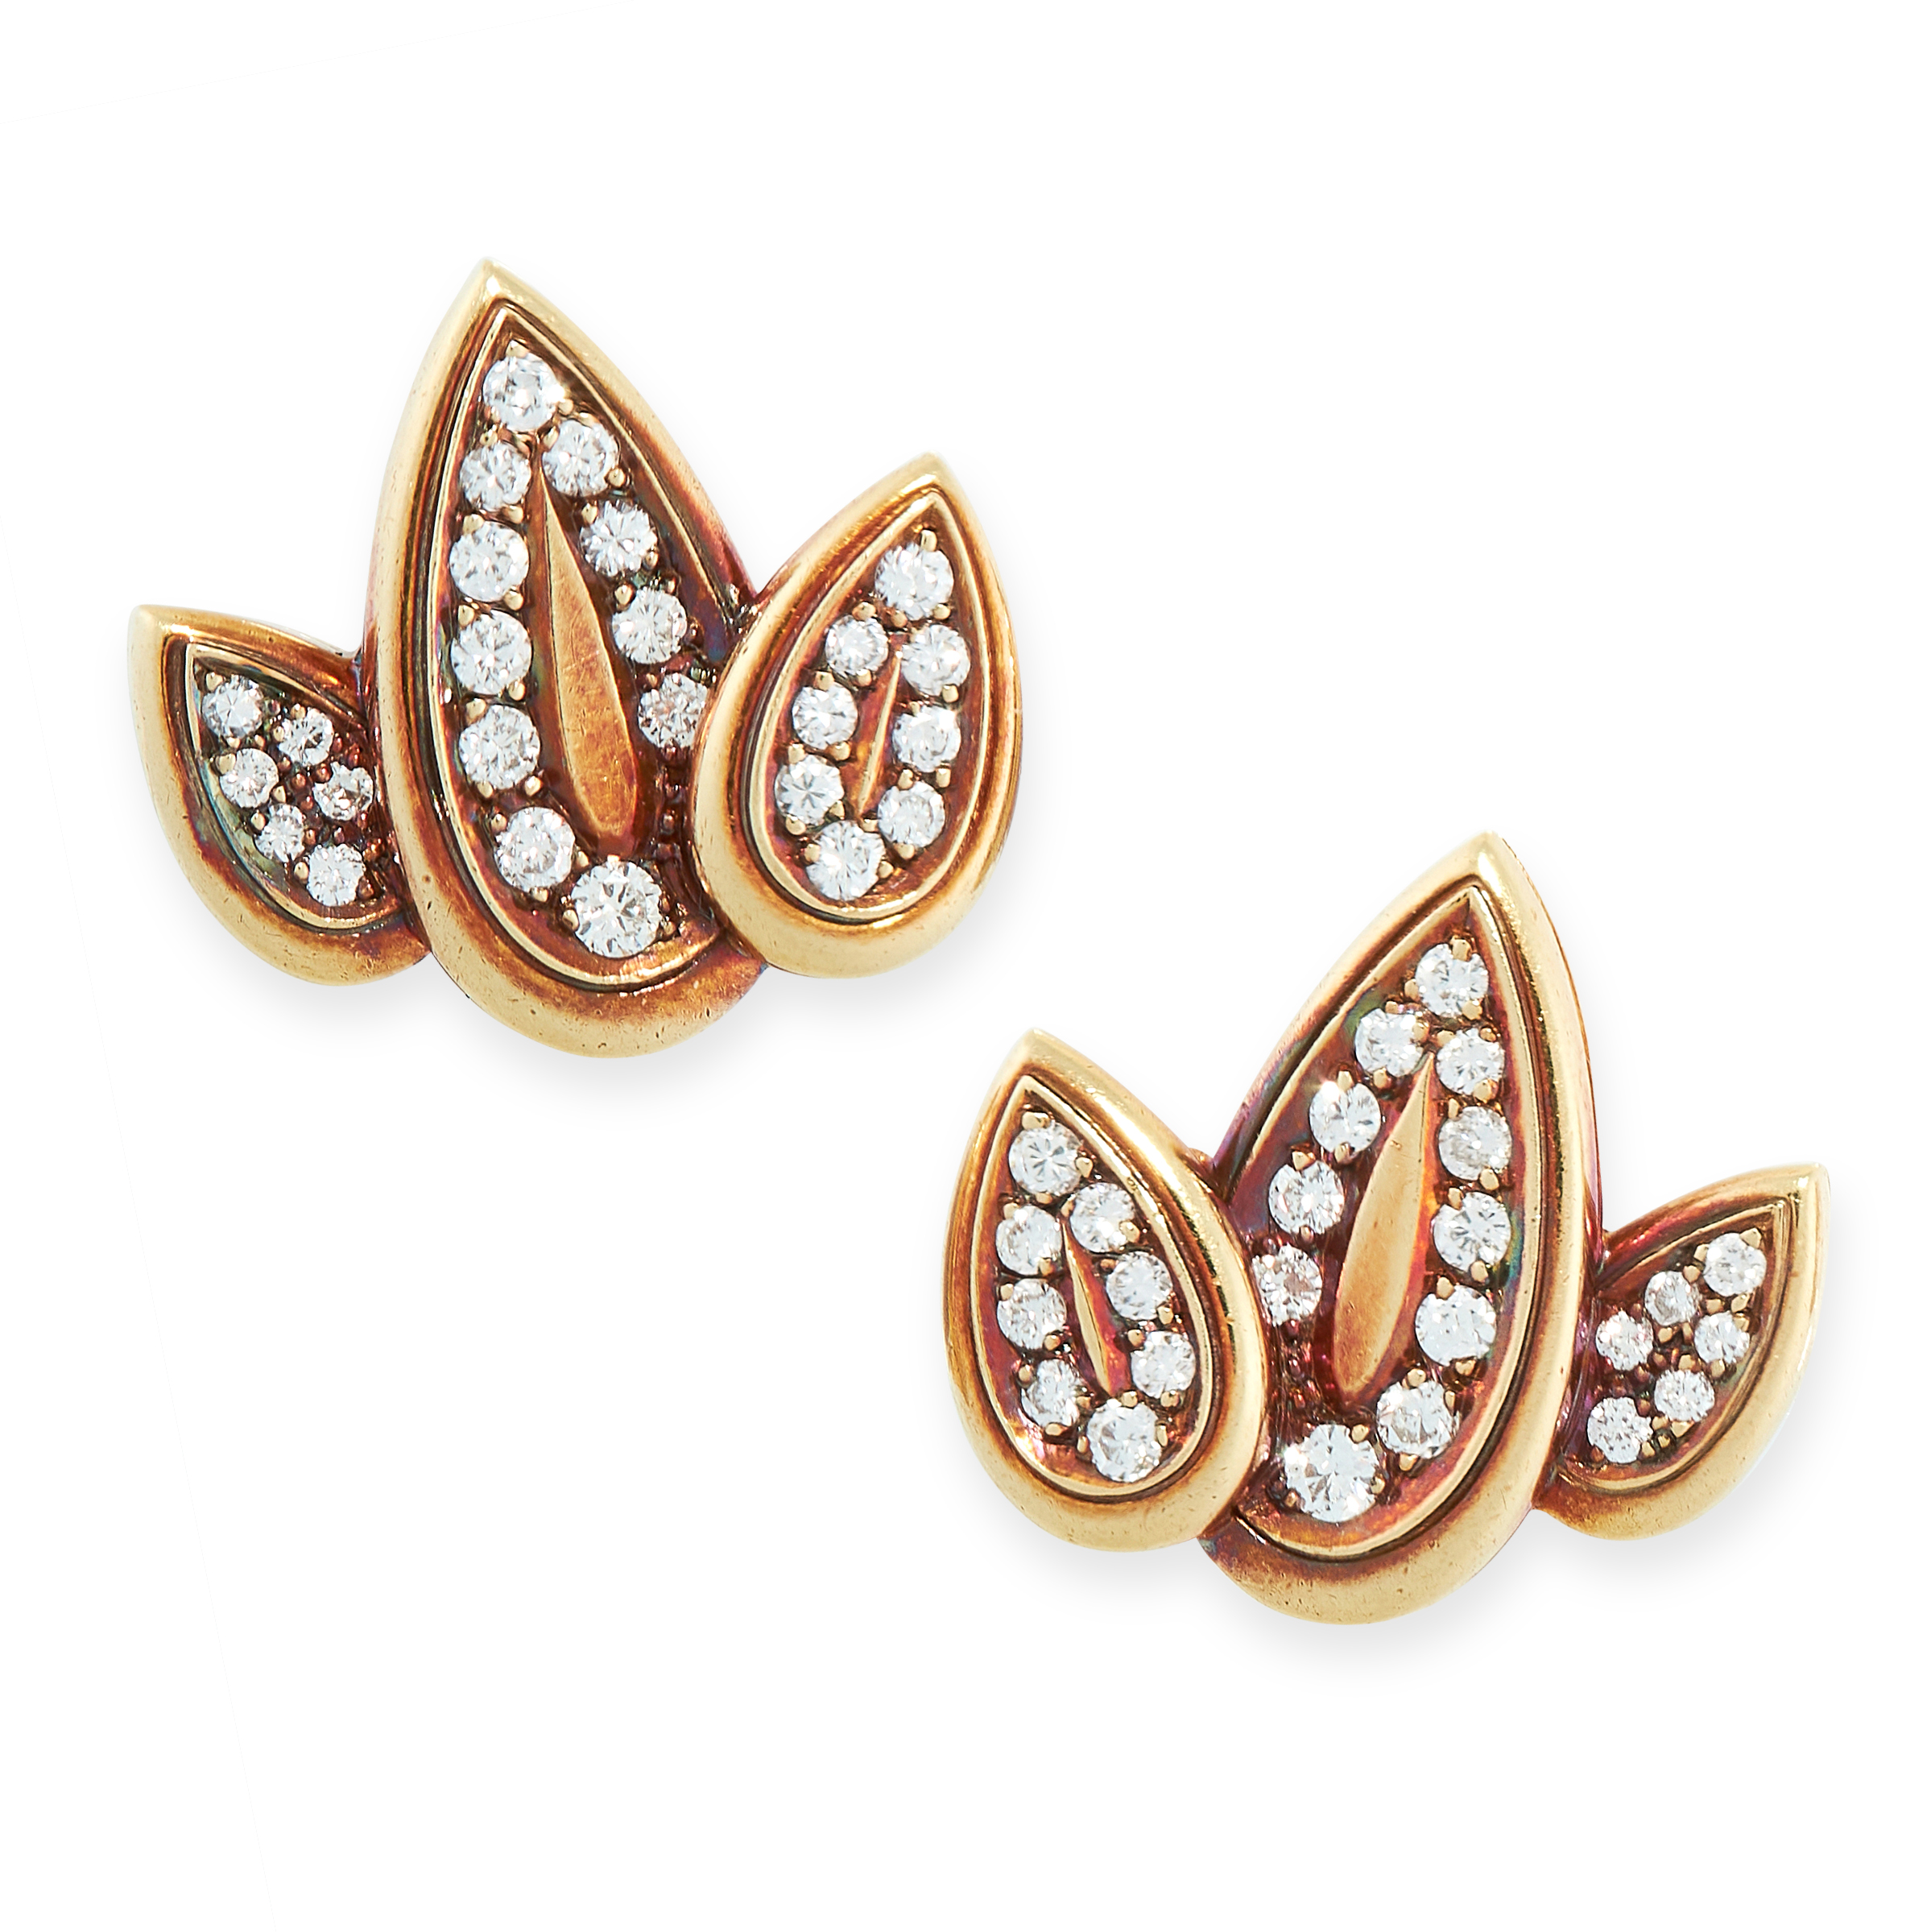 A PAIR OF VINTAGE DIAMOND CLIP EARRINGS in yellow gold, each in the form of a leaf, set with rows of